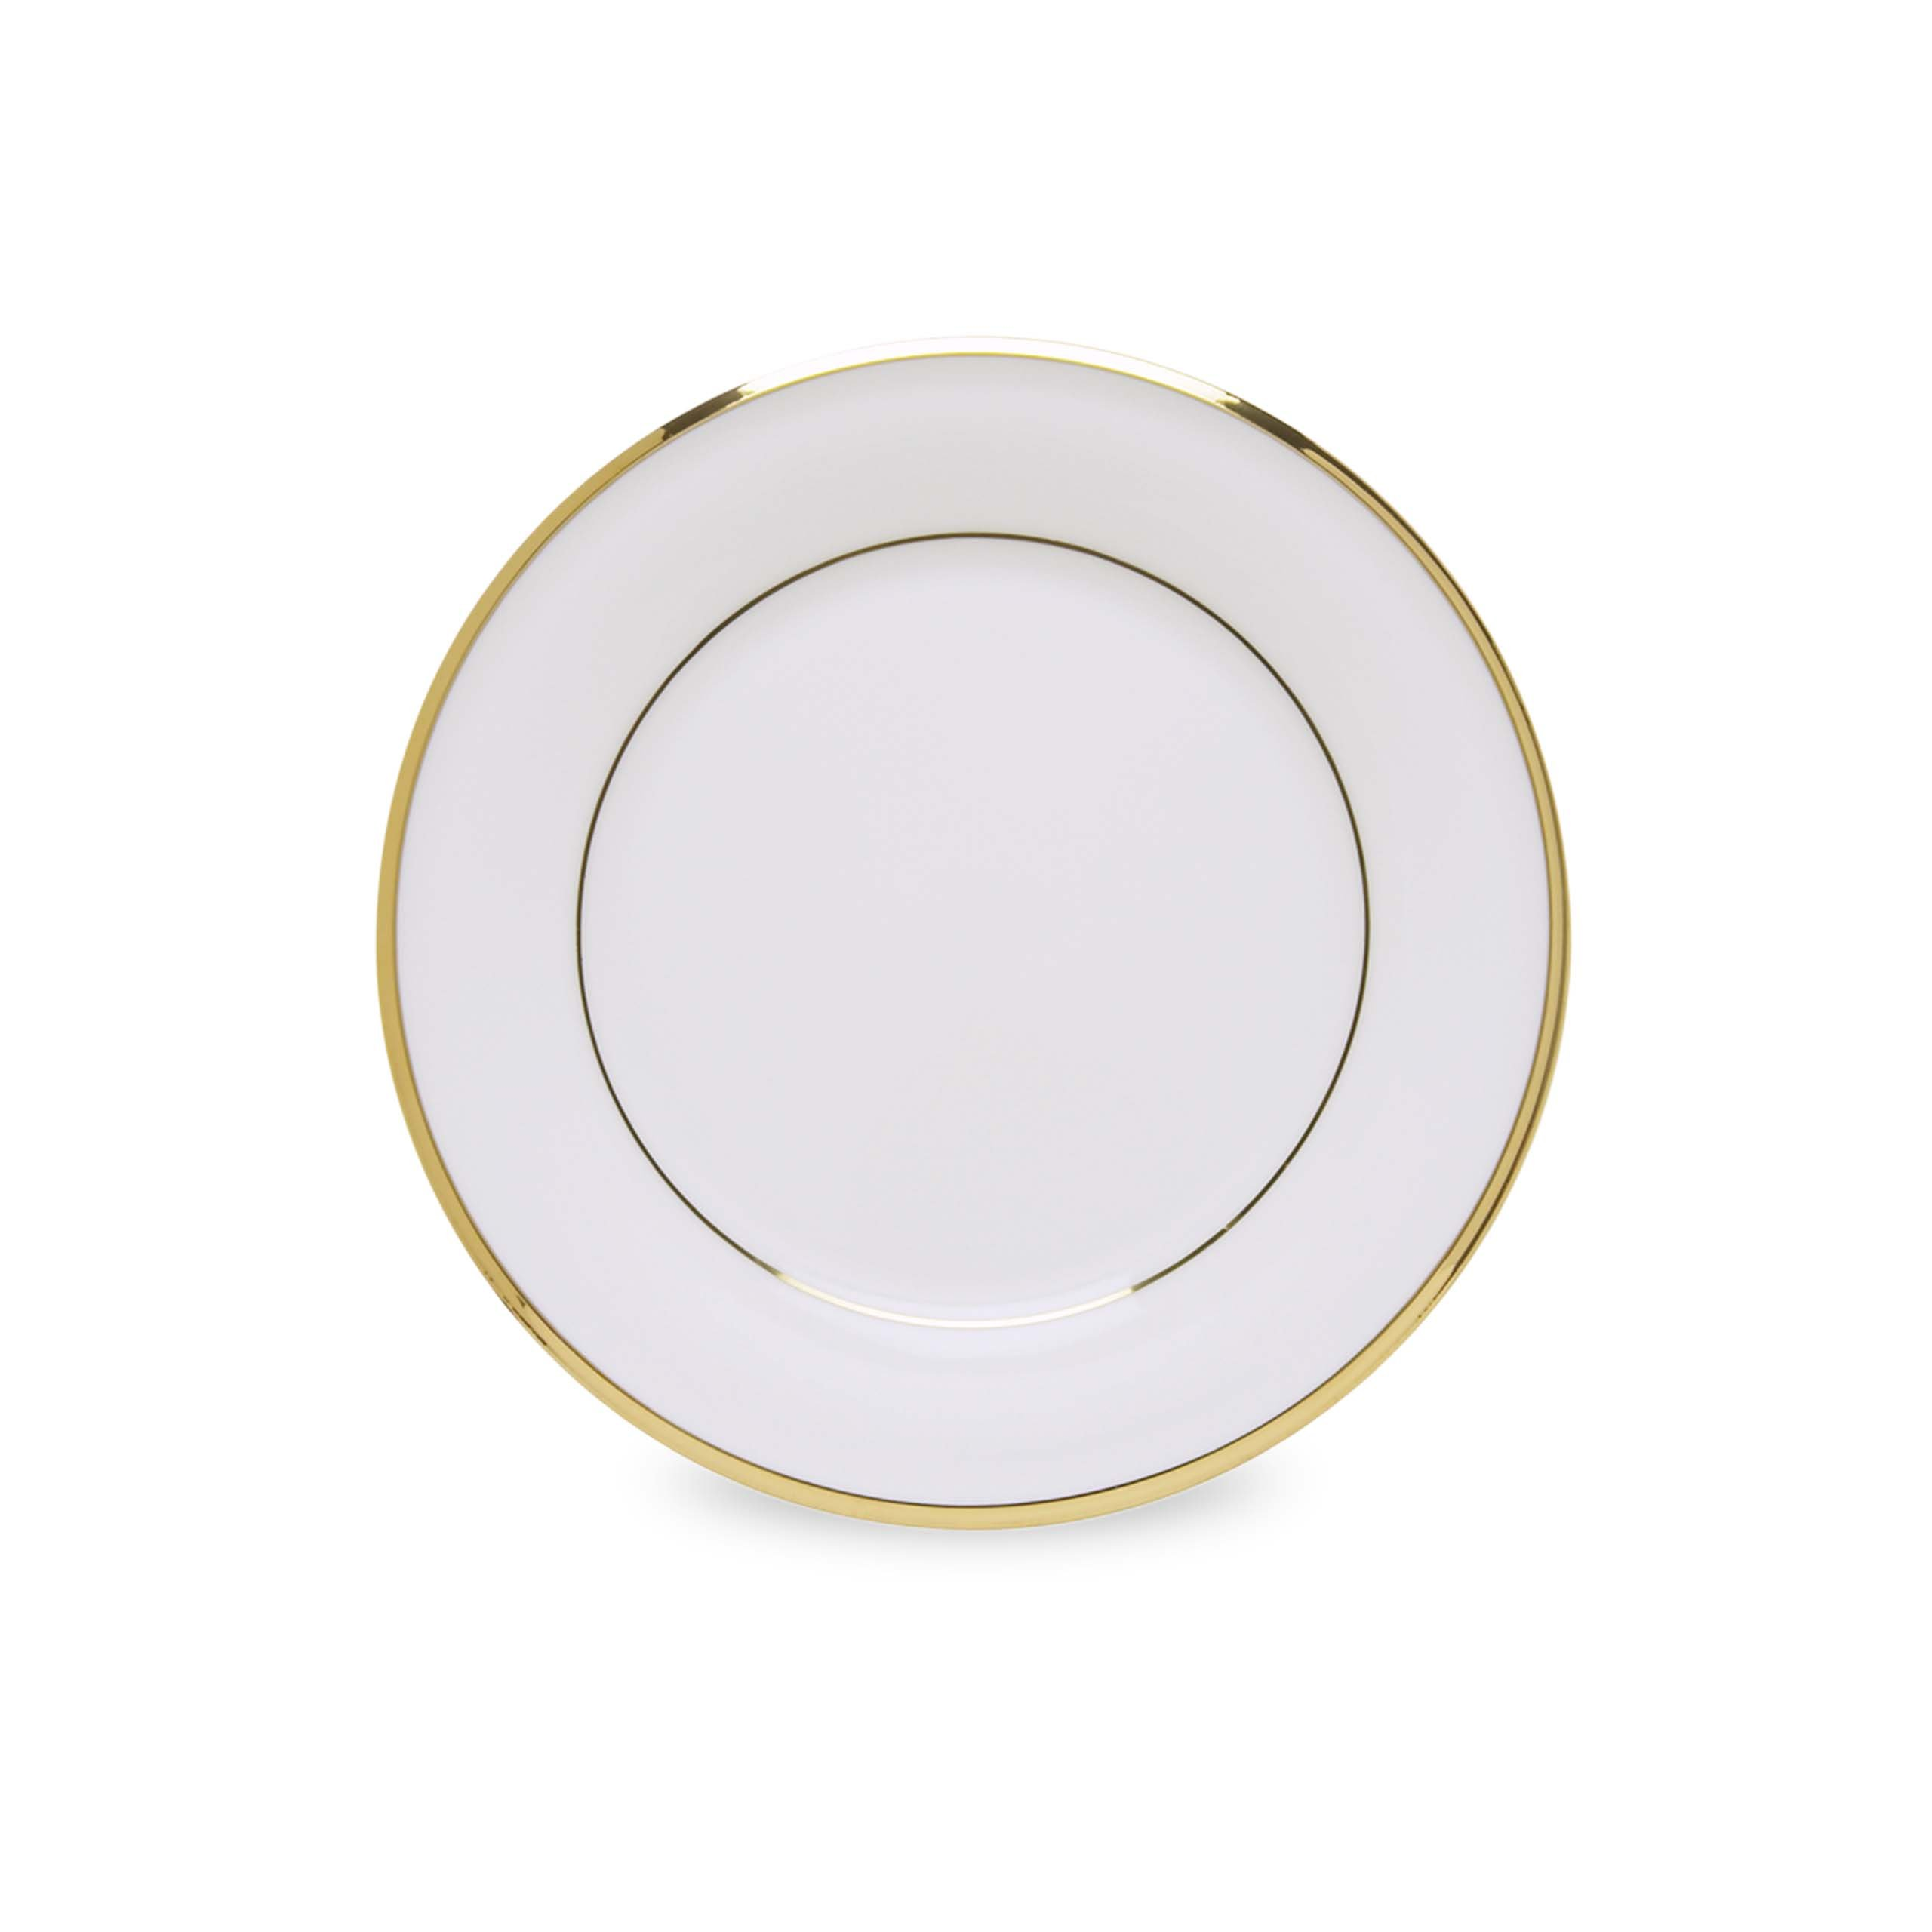 Lenox Eternal White Gold Banded Bone China Butter Plate